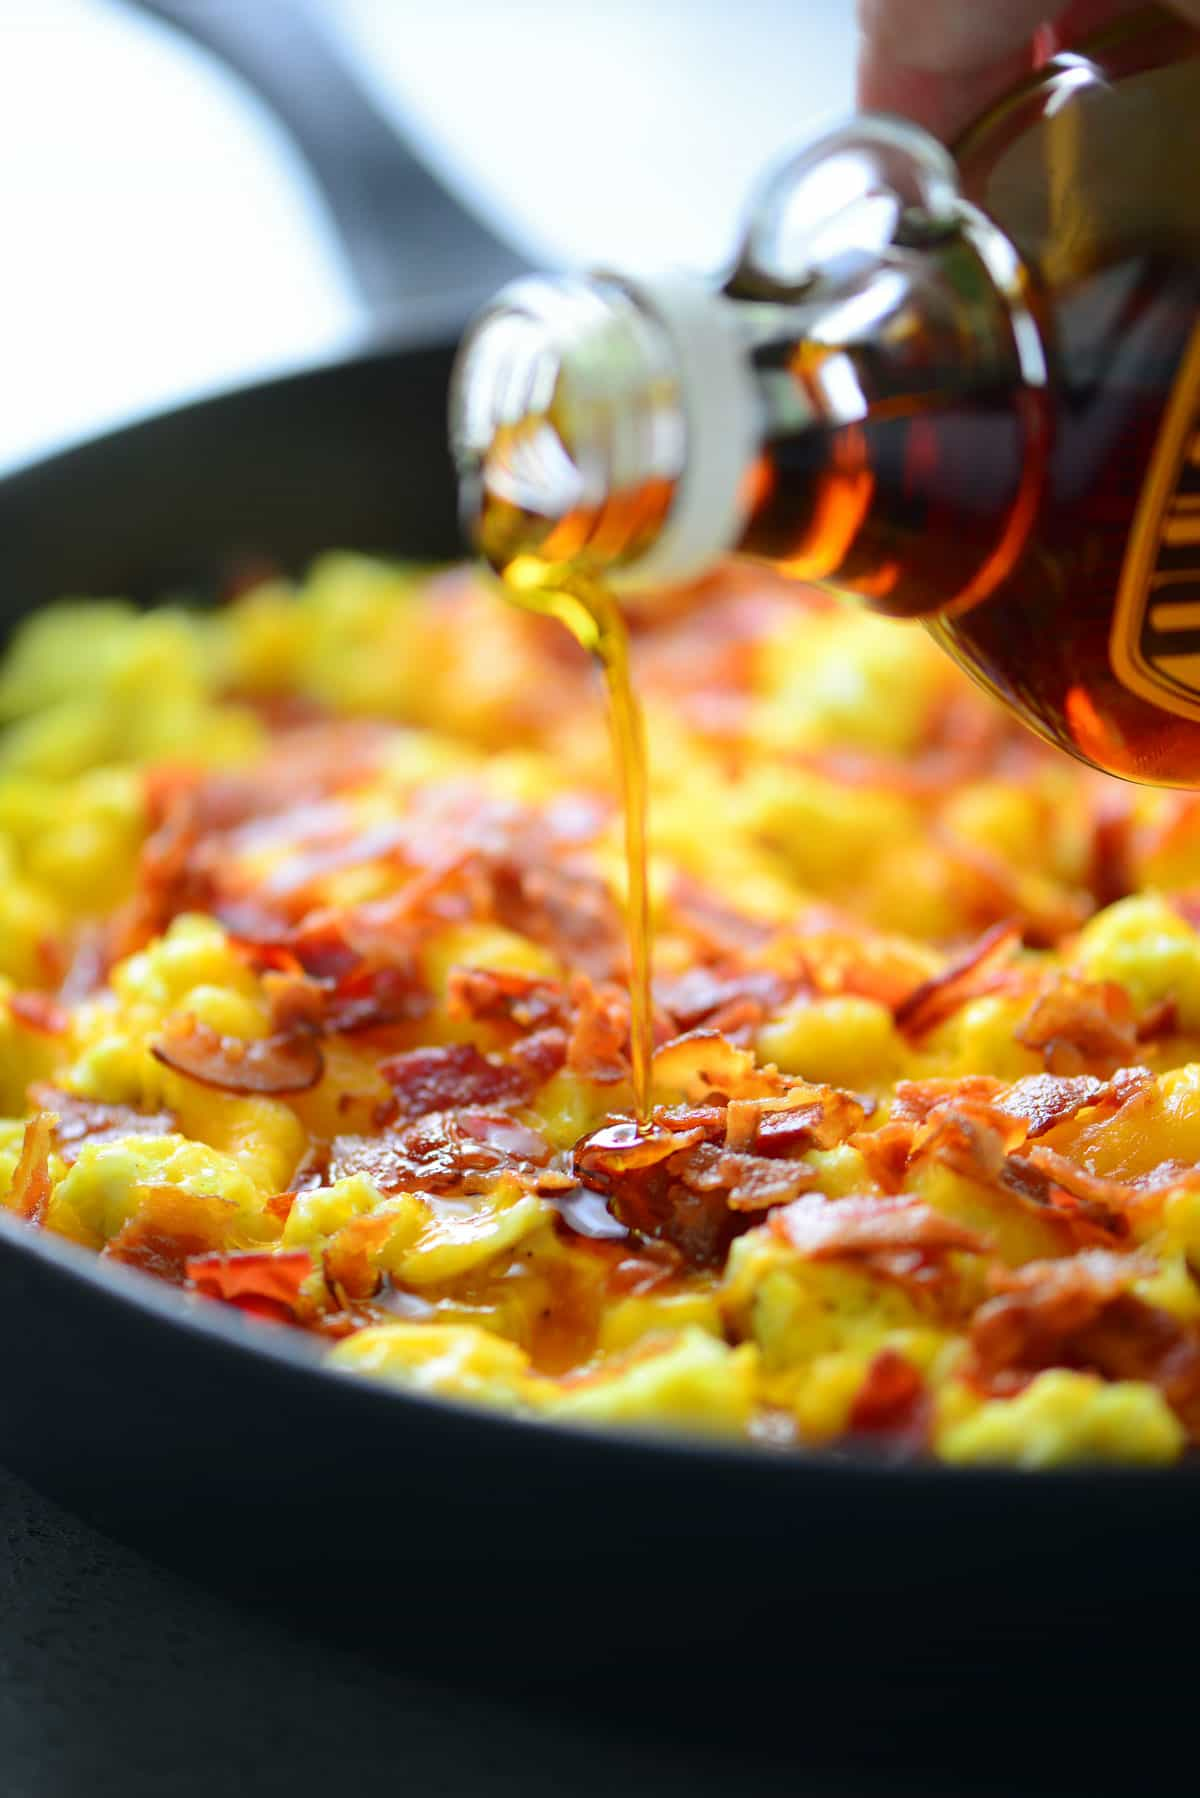 Pancake Breakfast Pizza with Maple Syrup